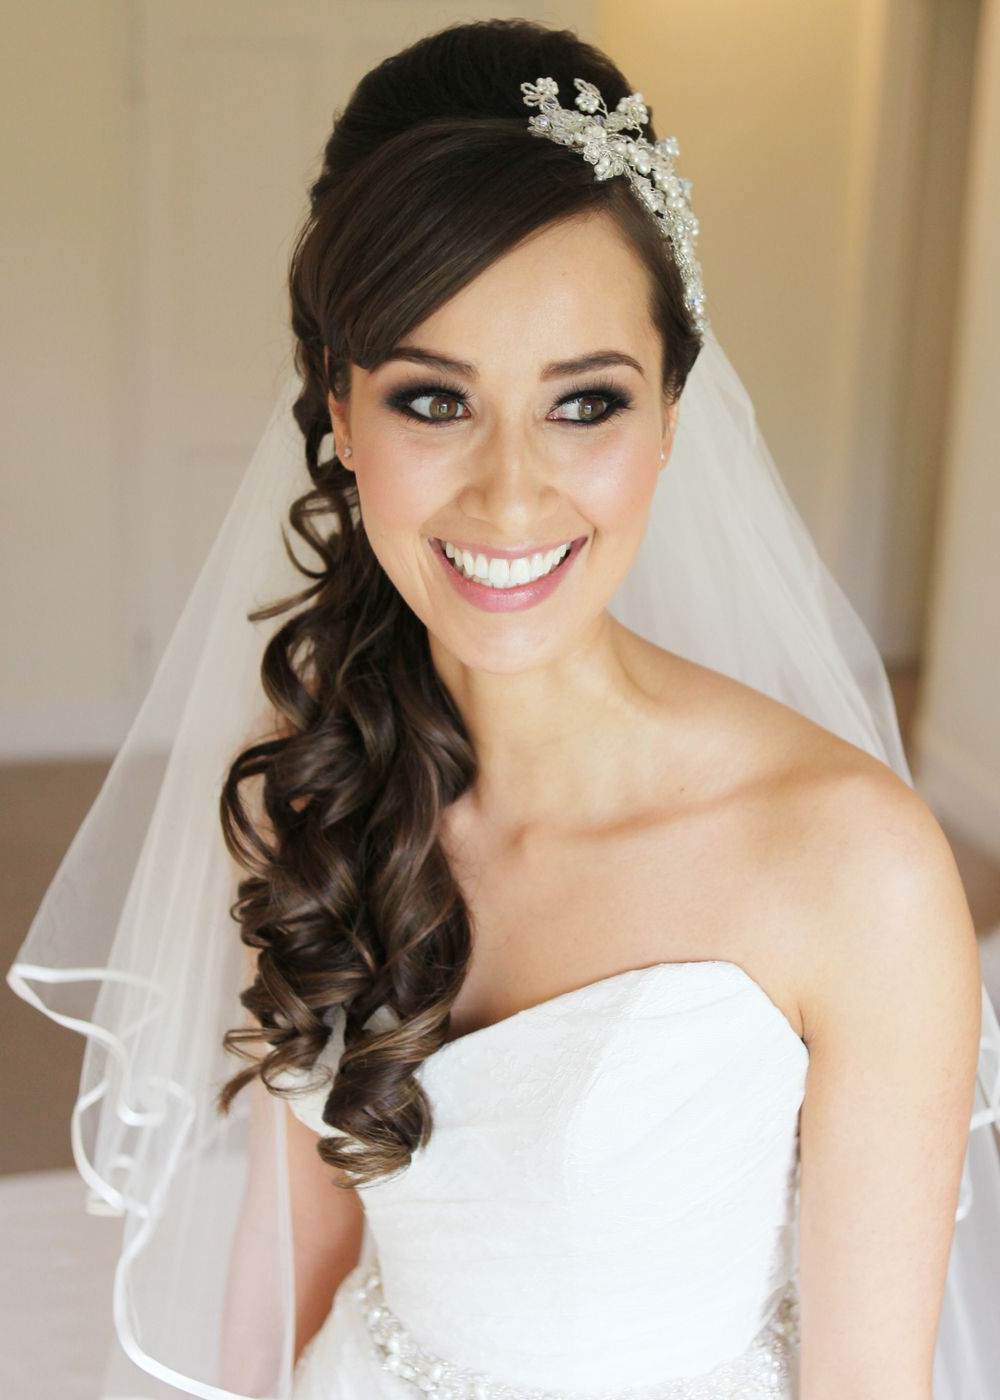 15 Fabulous Half Up Half Down Wedding Hairstyles (View 2 of 20)